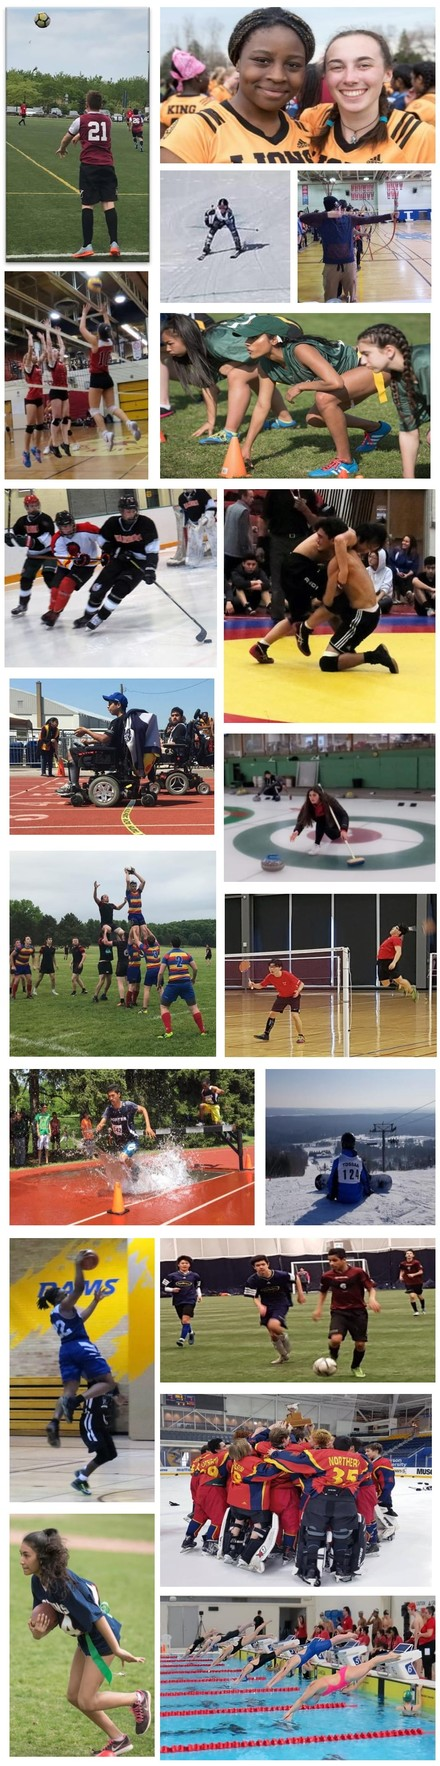 TDSB Sport Collage